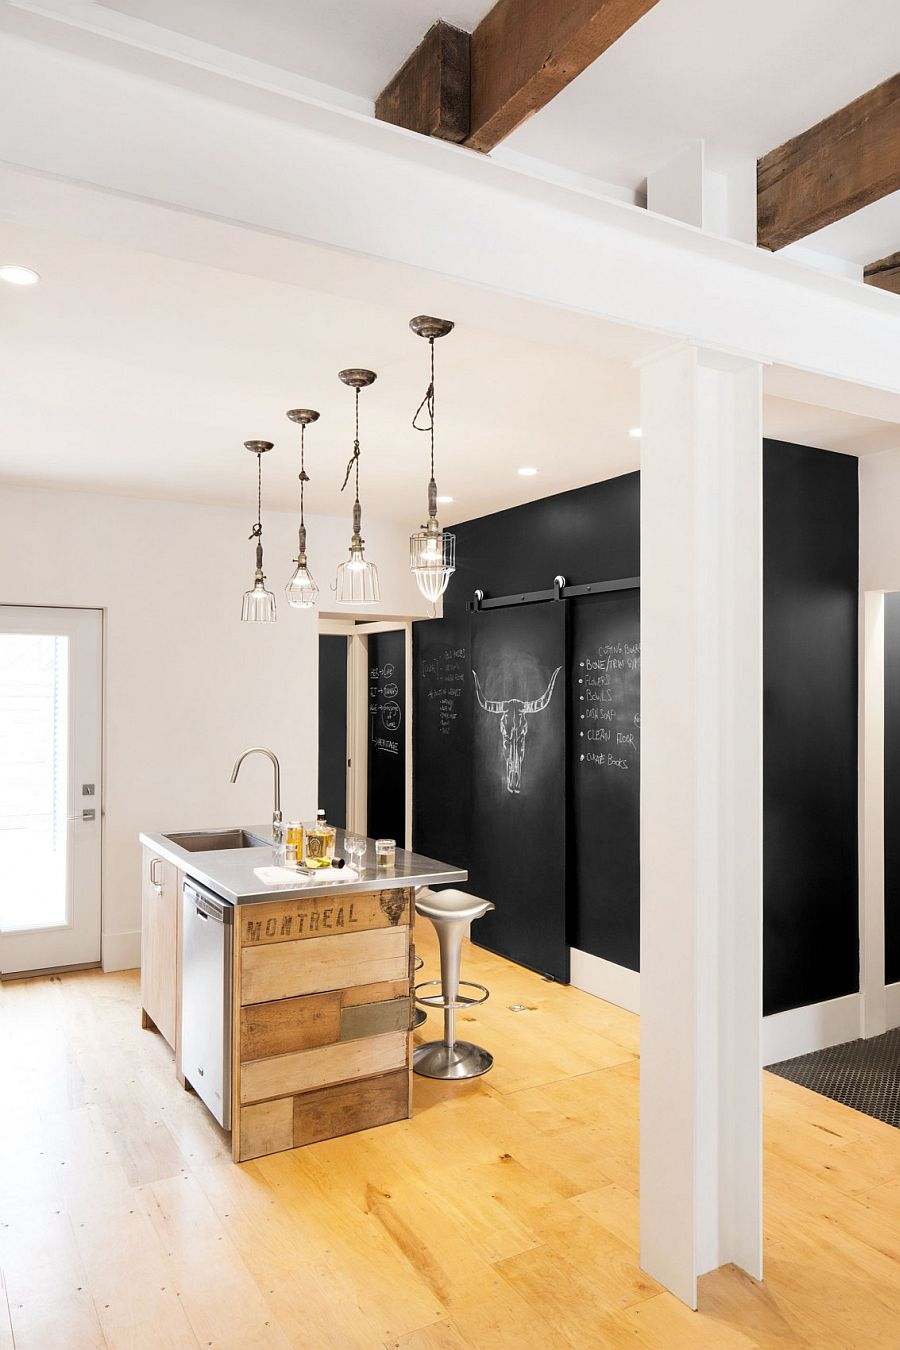 Chalkboard wall in the kitchen along with a tiny island clad in reclaimed wood